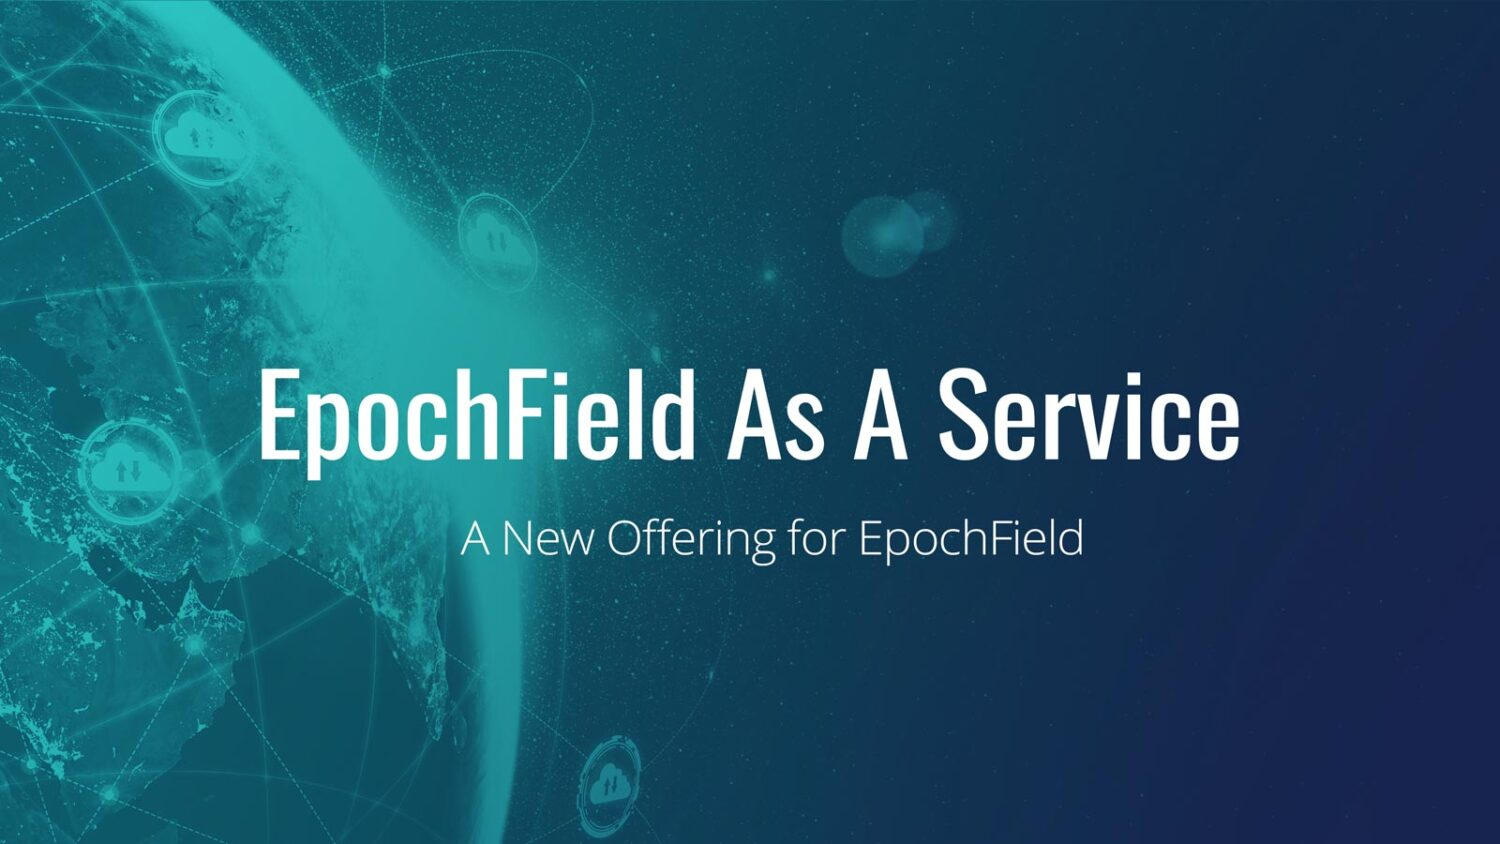 EpochField As A Service – A New Offering for EpochField